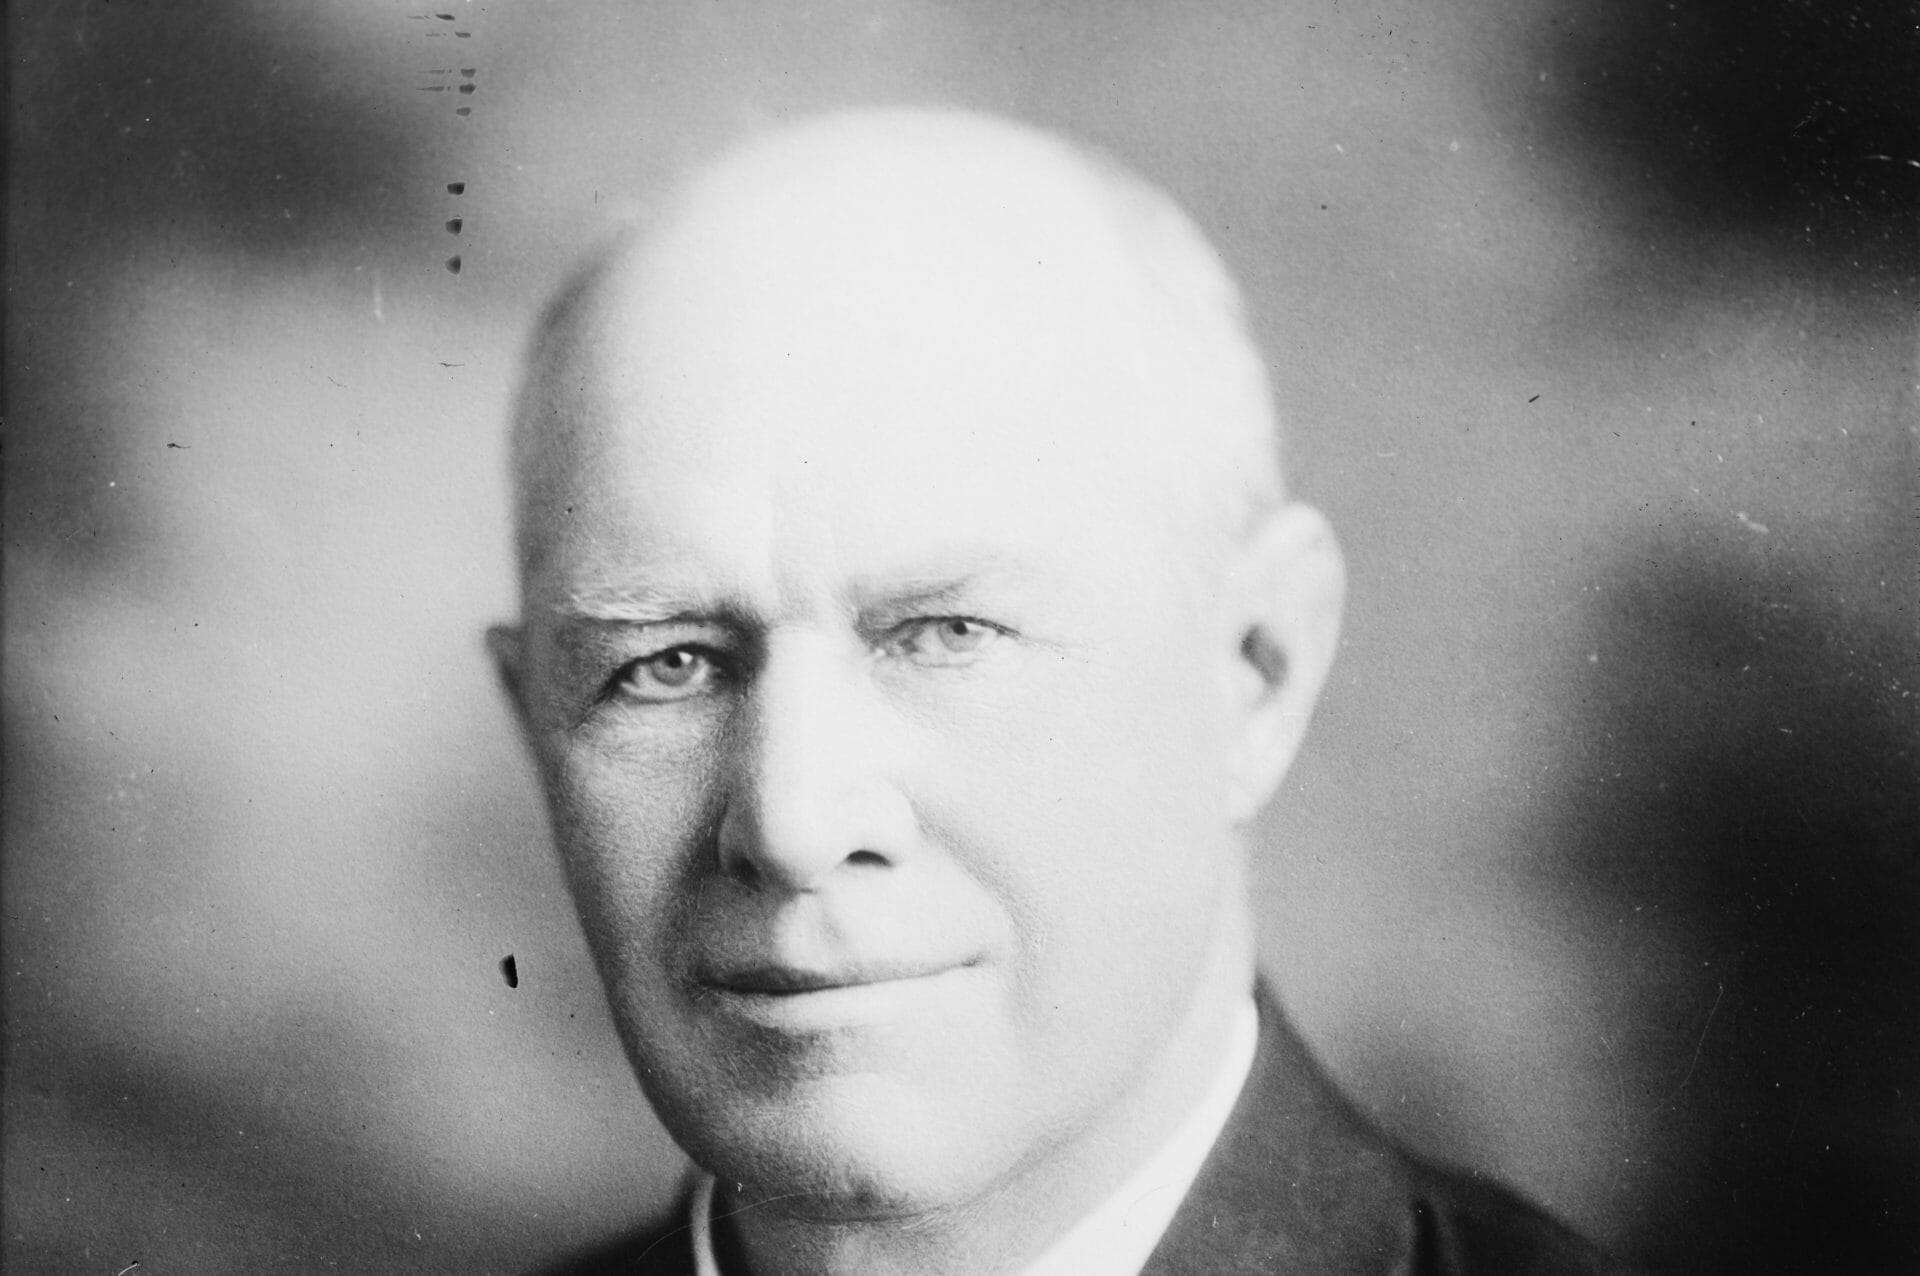 walter m. pierce